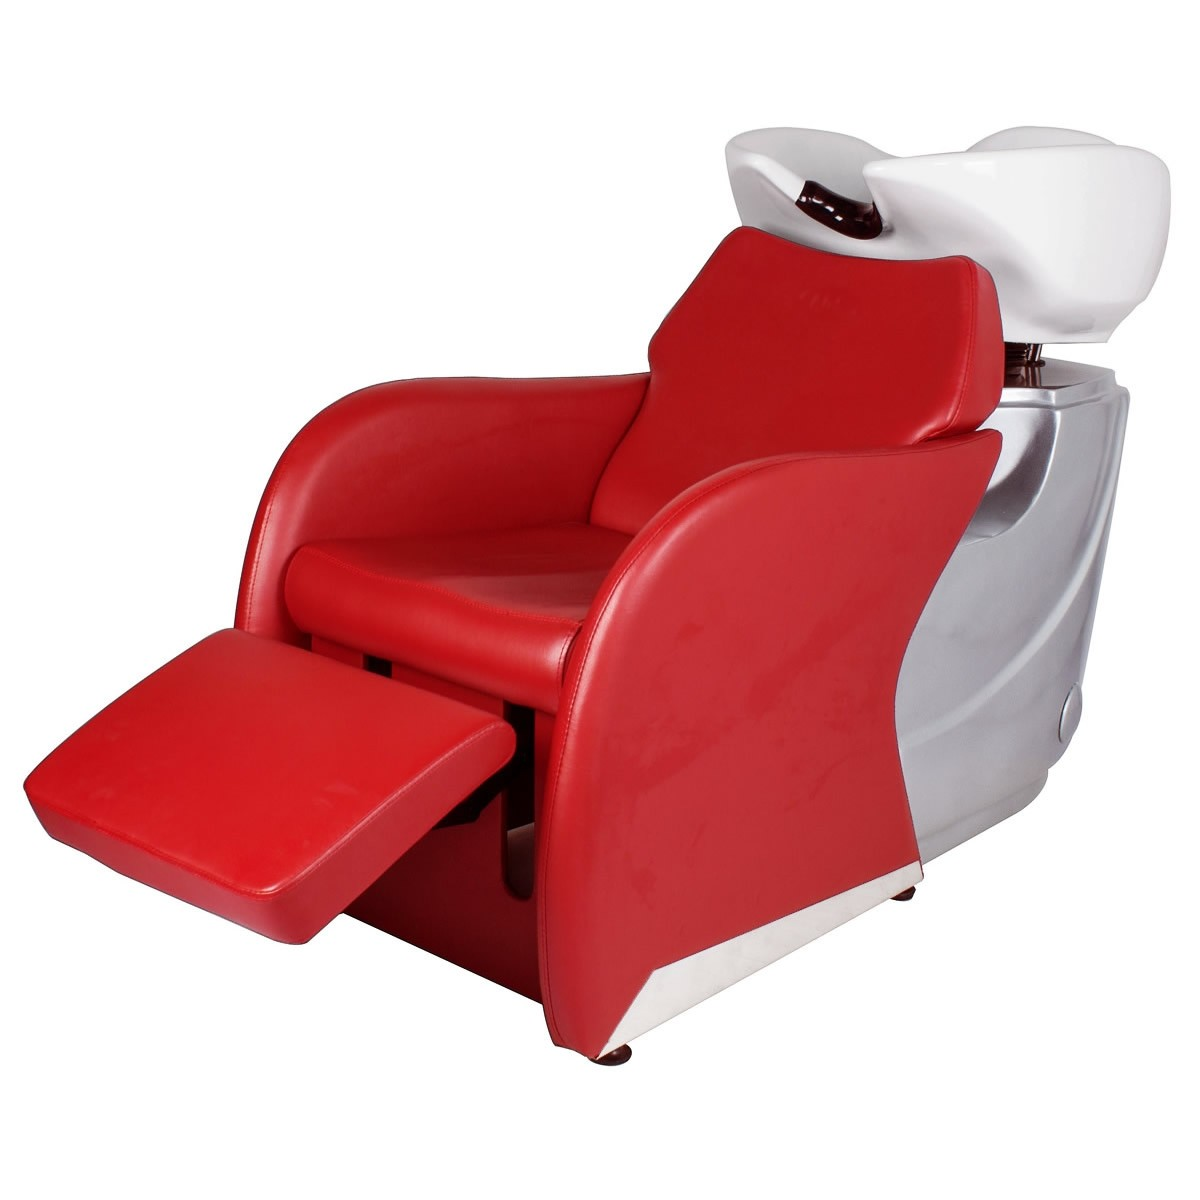 backwash chairs for sale ikea adirondack odessa shampoo bowl in cardinal red hair salon bowls wholesale furniture